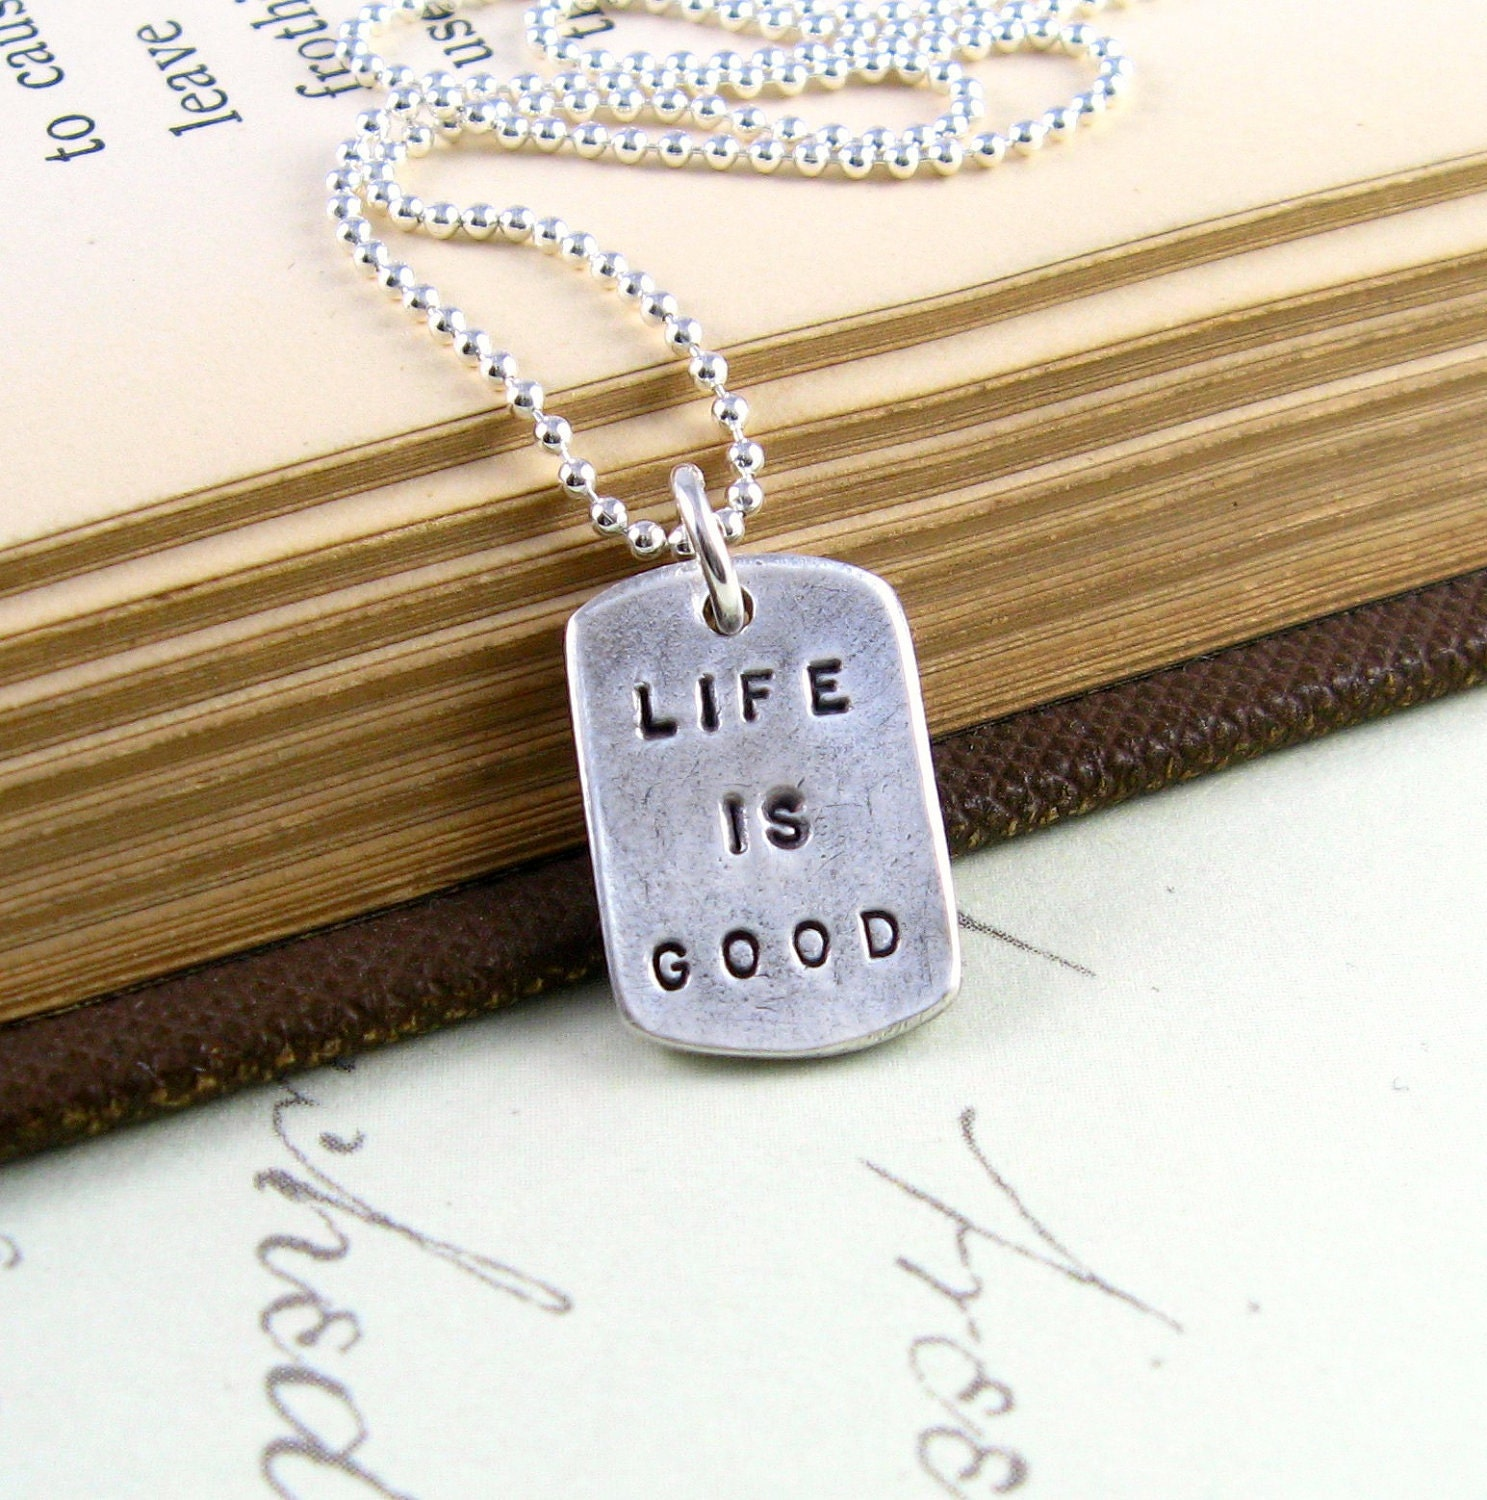 Life Is Good Silver Dog Tag Unisex Necklace Handstamped Silver Necklace Thanksgiving Fine Silver PMC Artisan Pendant - newhopebeading